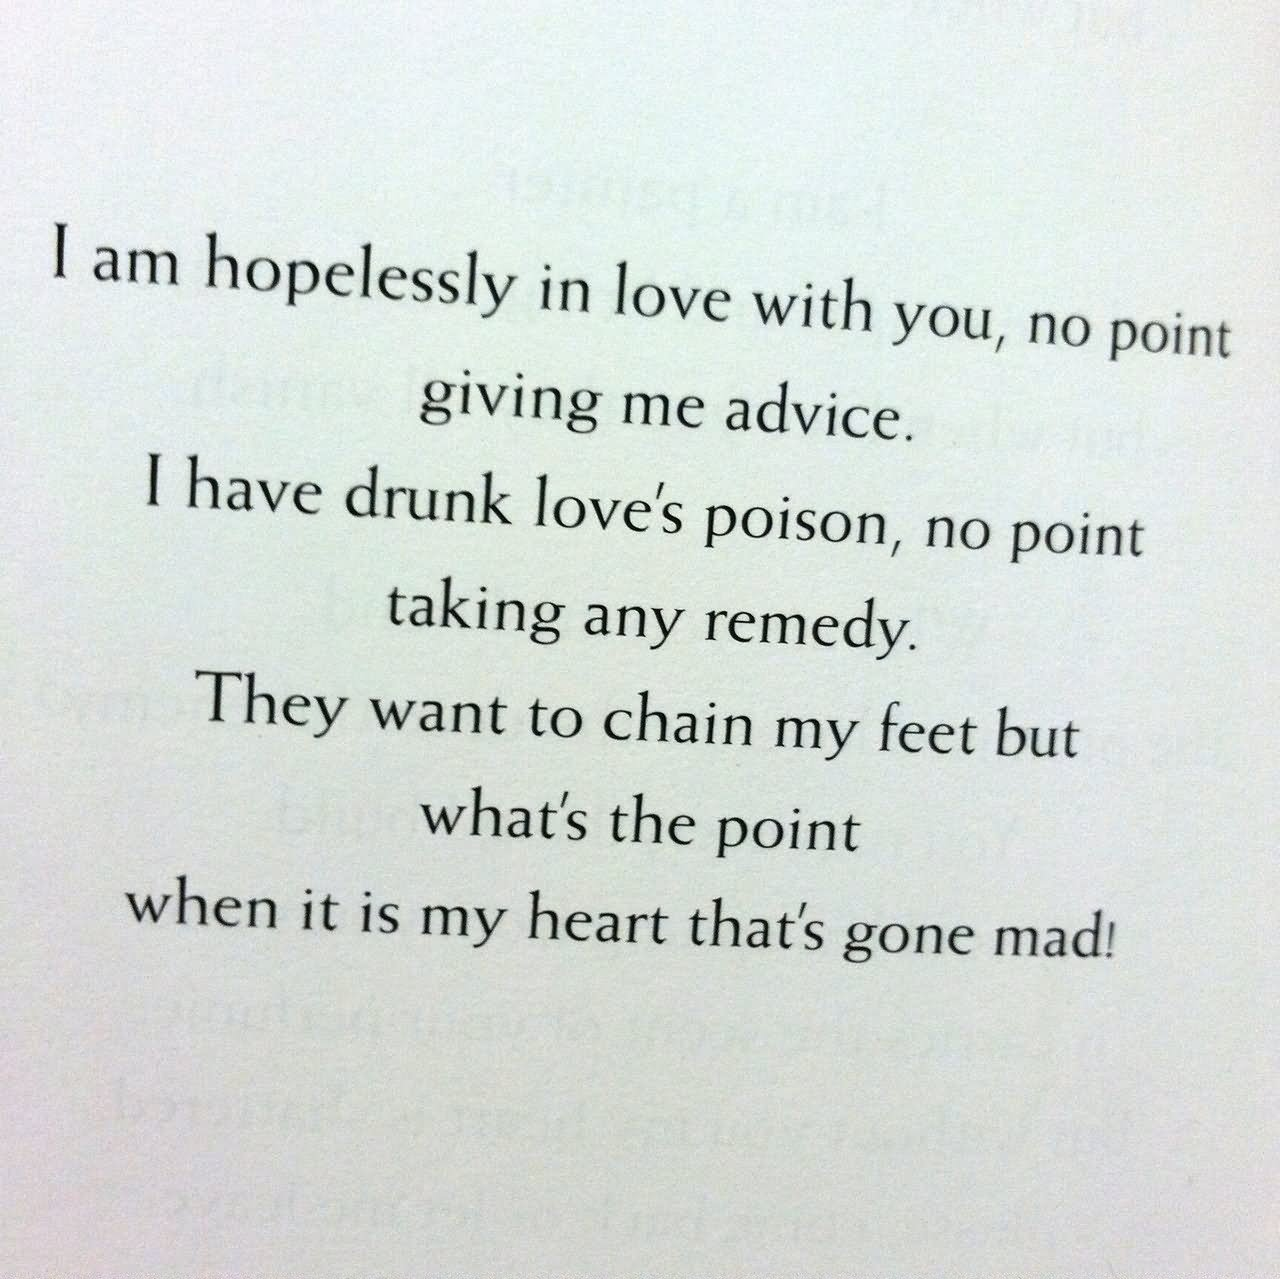 I Am Hopelessly In Love With You No Point Giving Me Advice Funny Love Poem Image